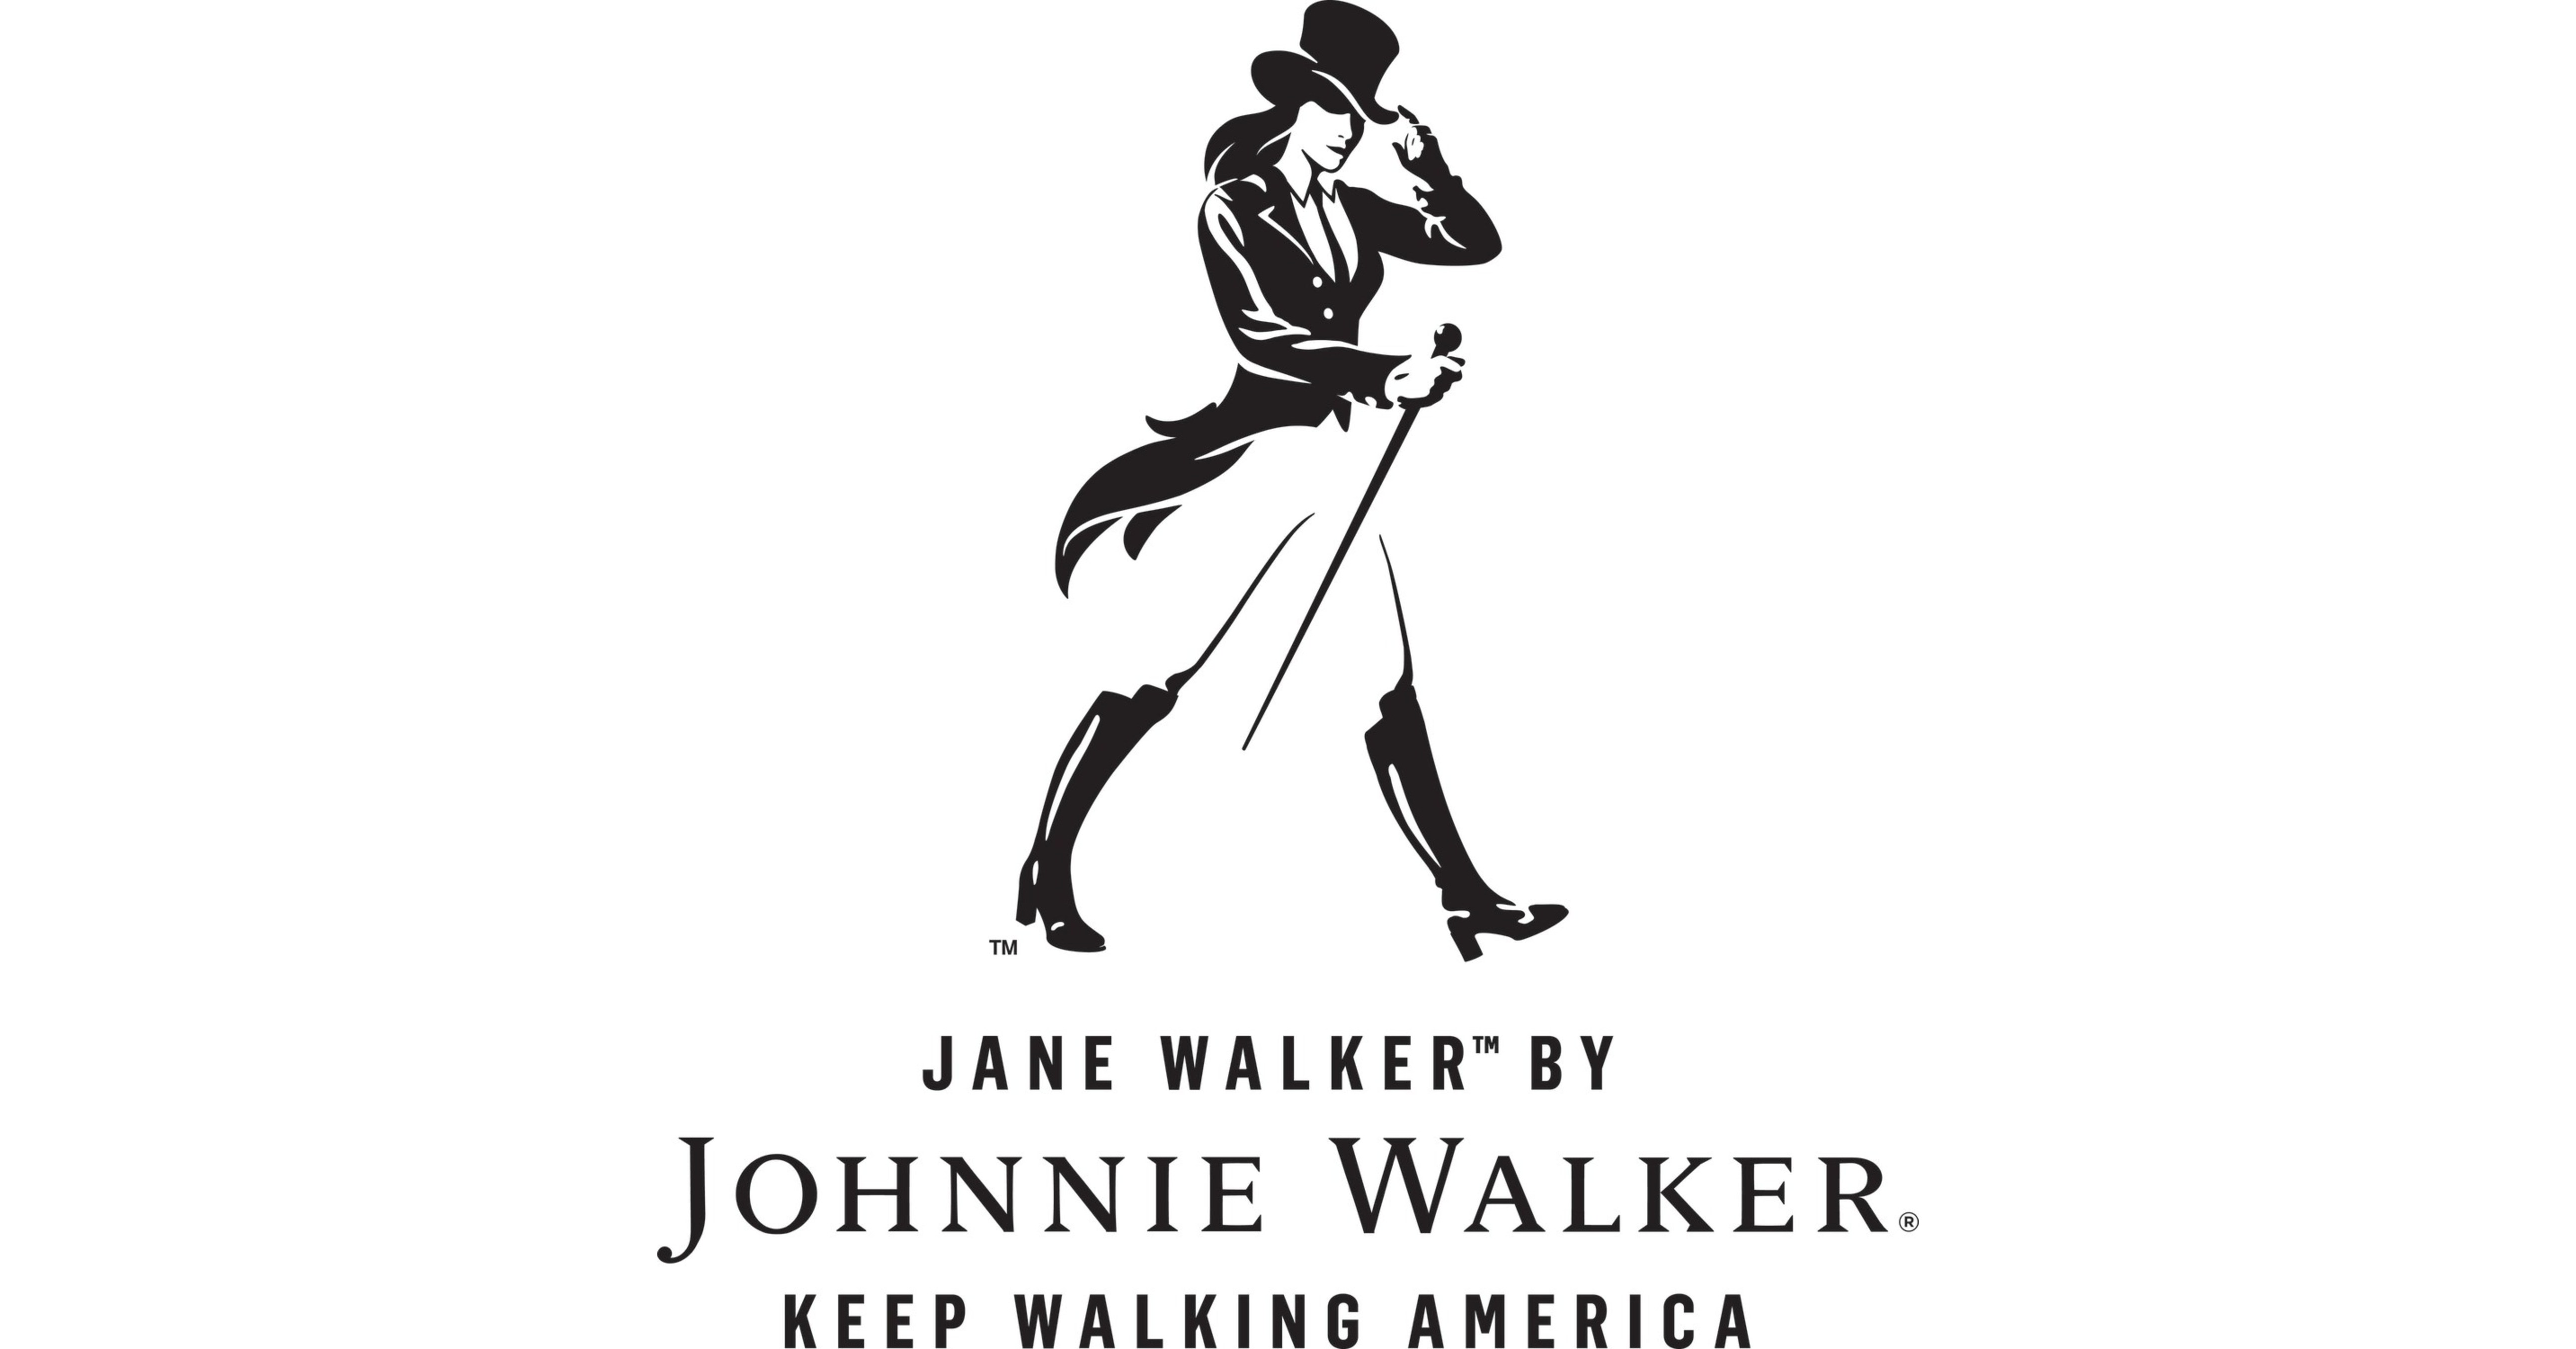 Johnnie Walker Launches Johnnie Walker Black Label The Jane Walker Edition, Donating $1 For Every Bottle Made To Organizations Championing Women's Causes photo